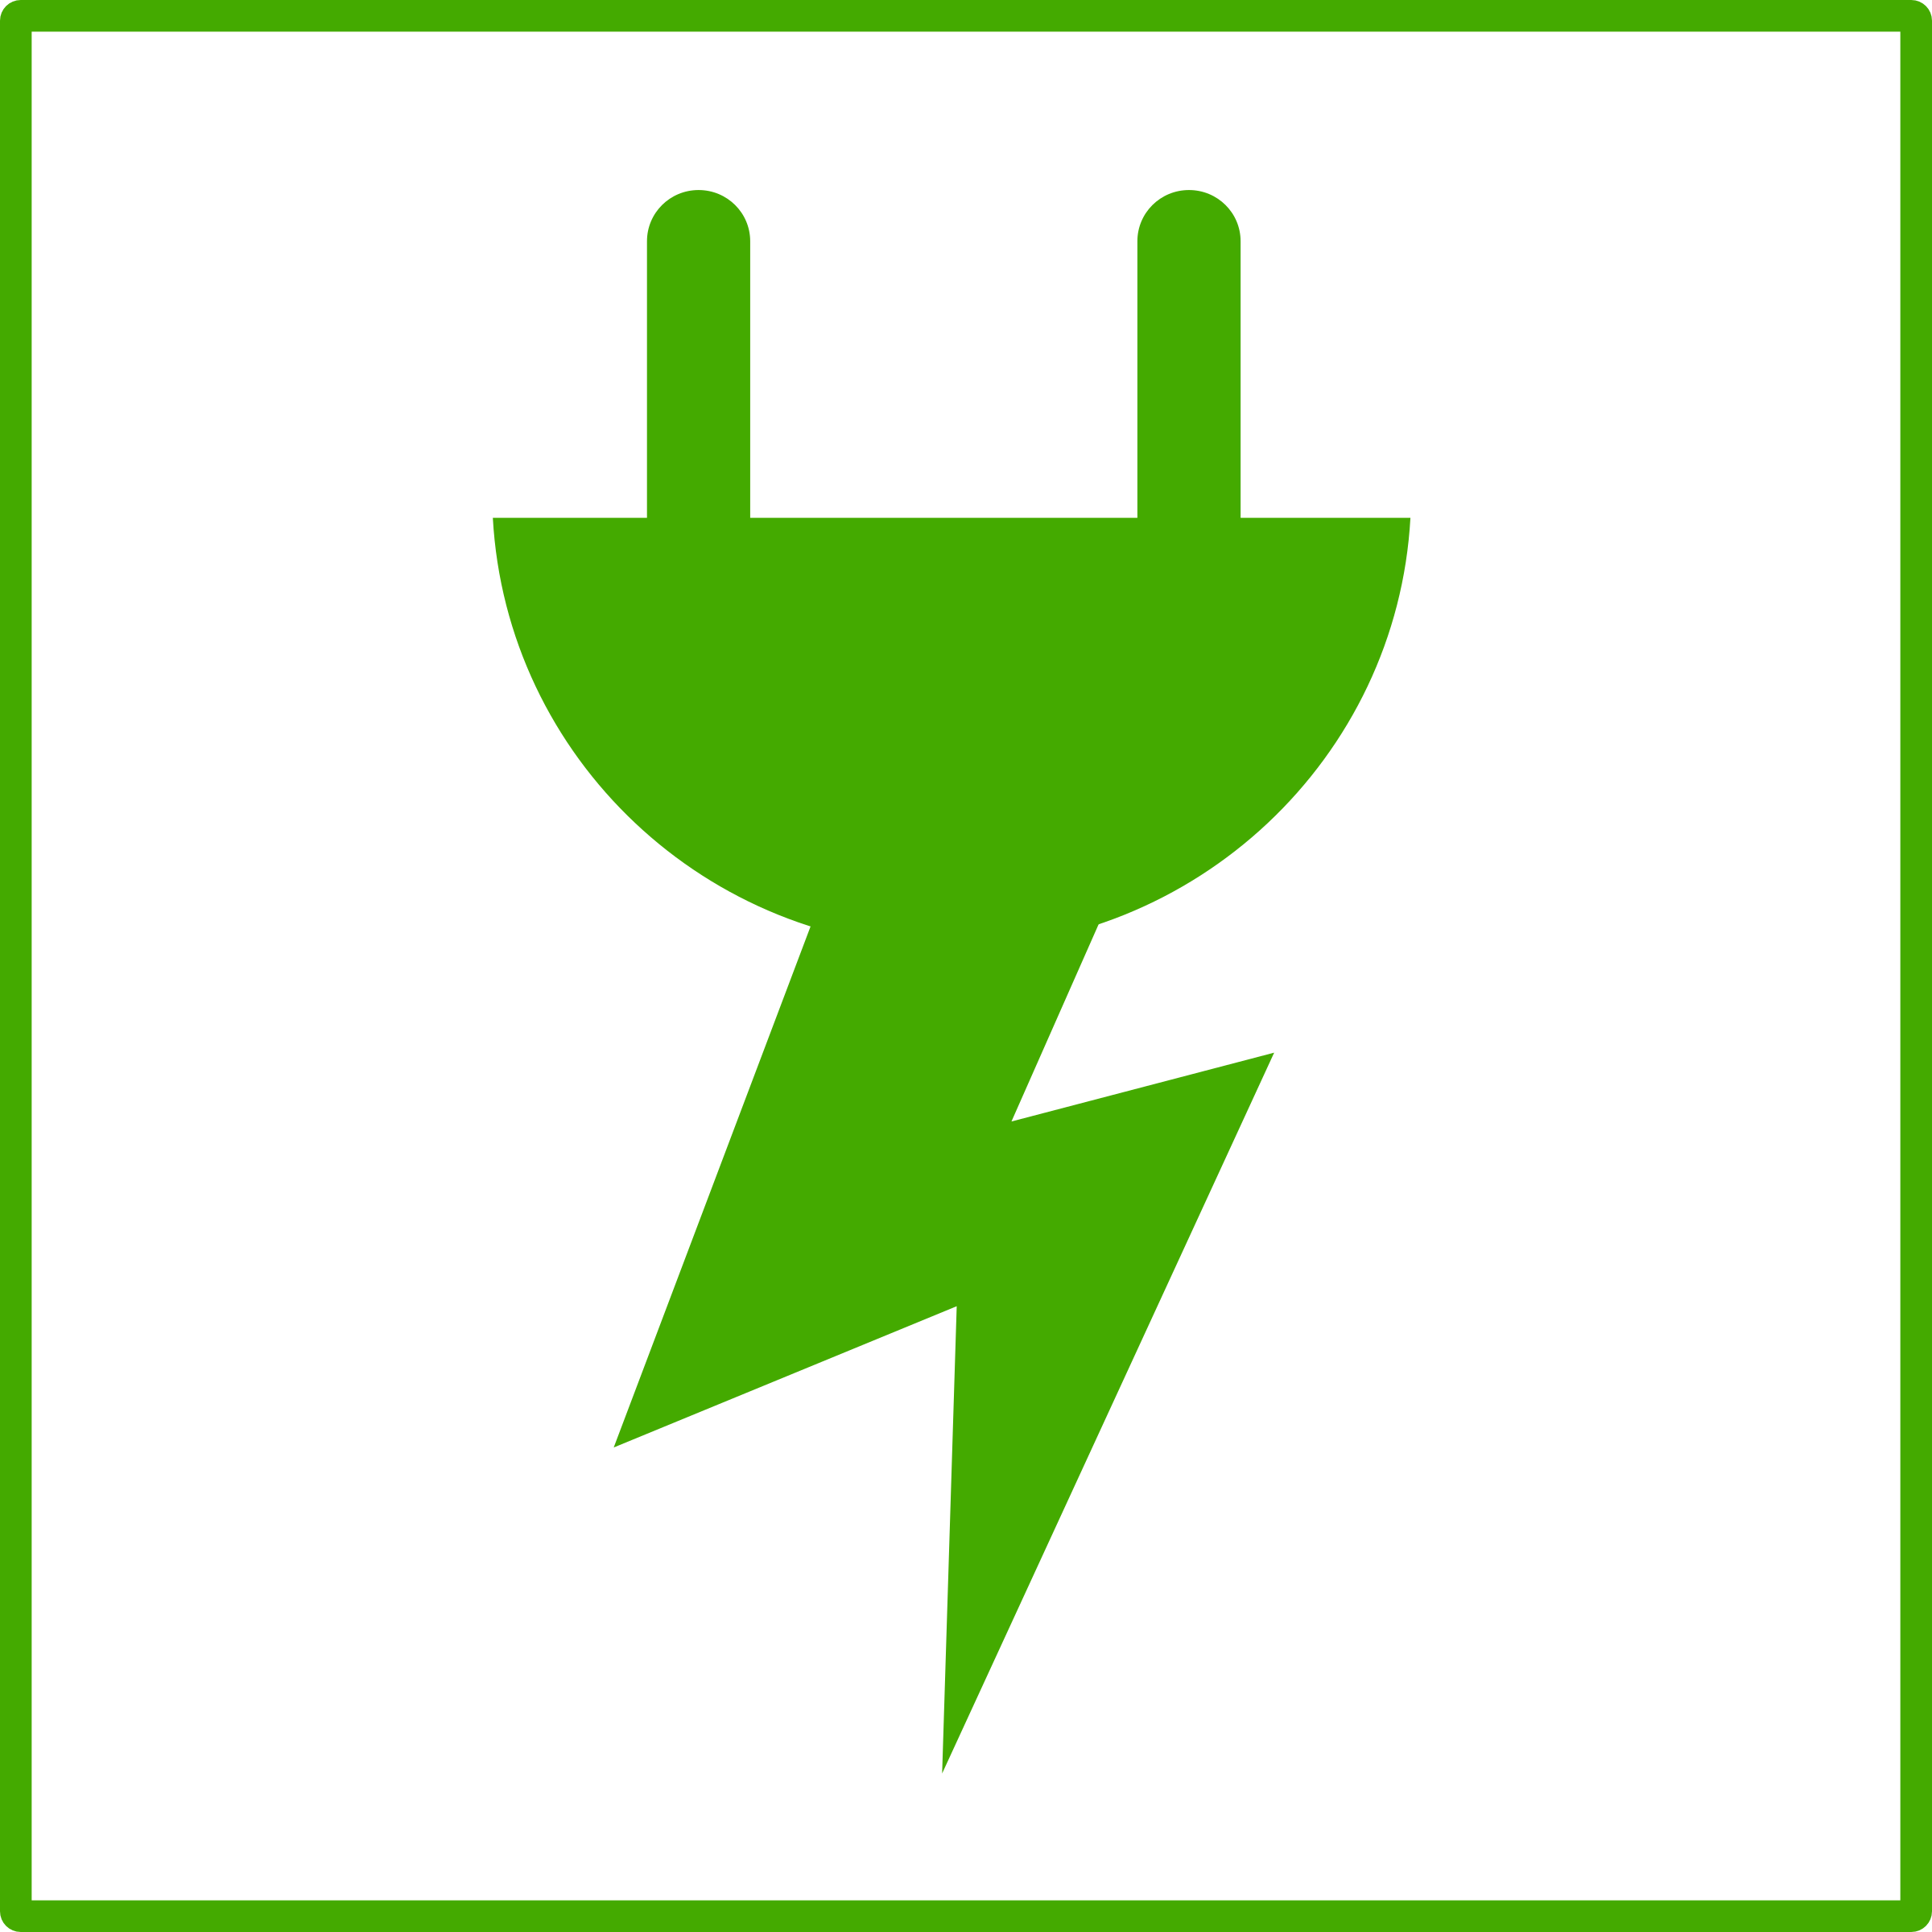 collection of energy. Future clipart vission